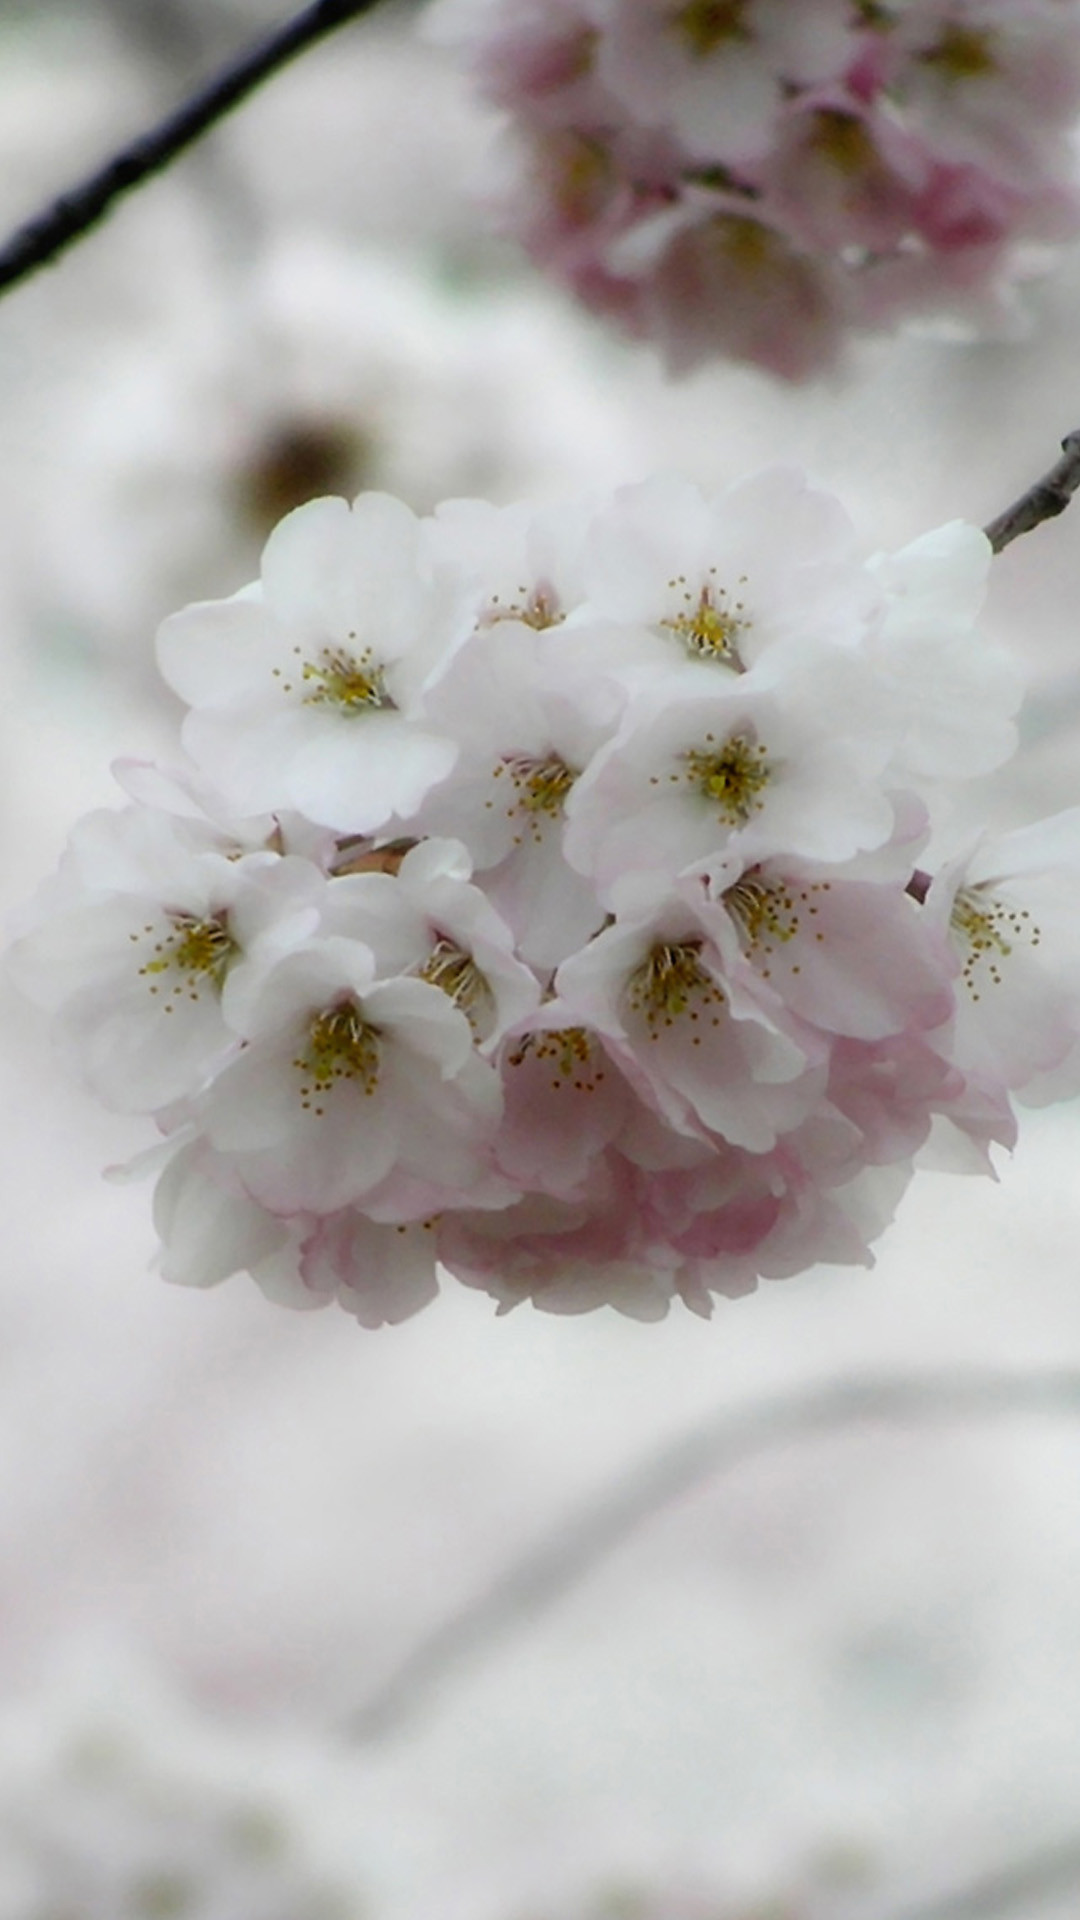 White cherry blossoms HD Wallpaper iPhone 6 plus